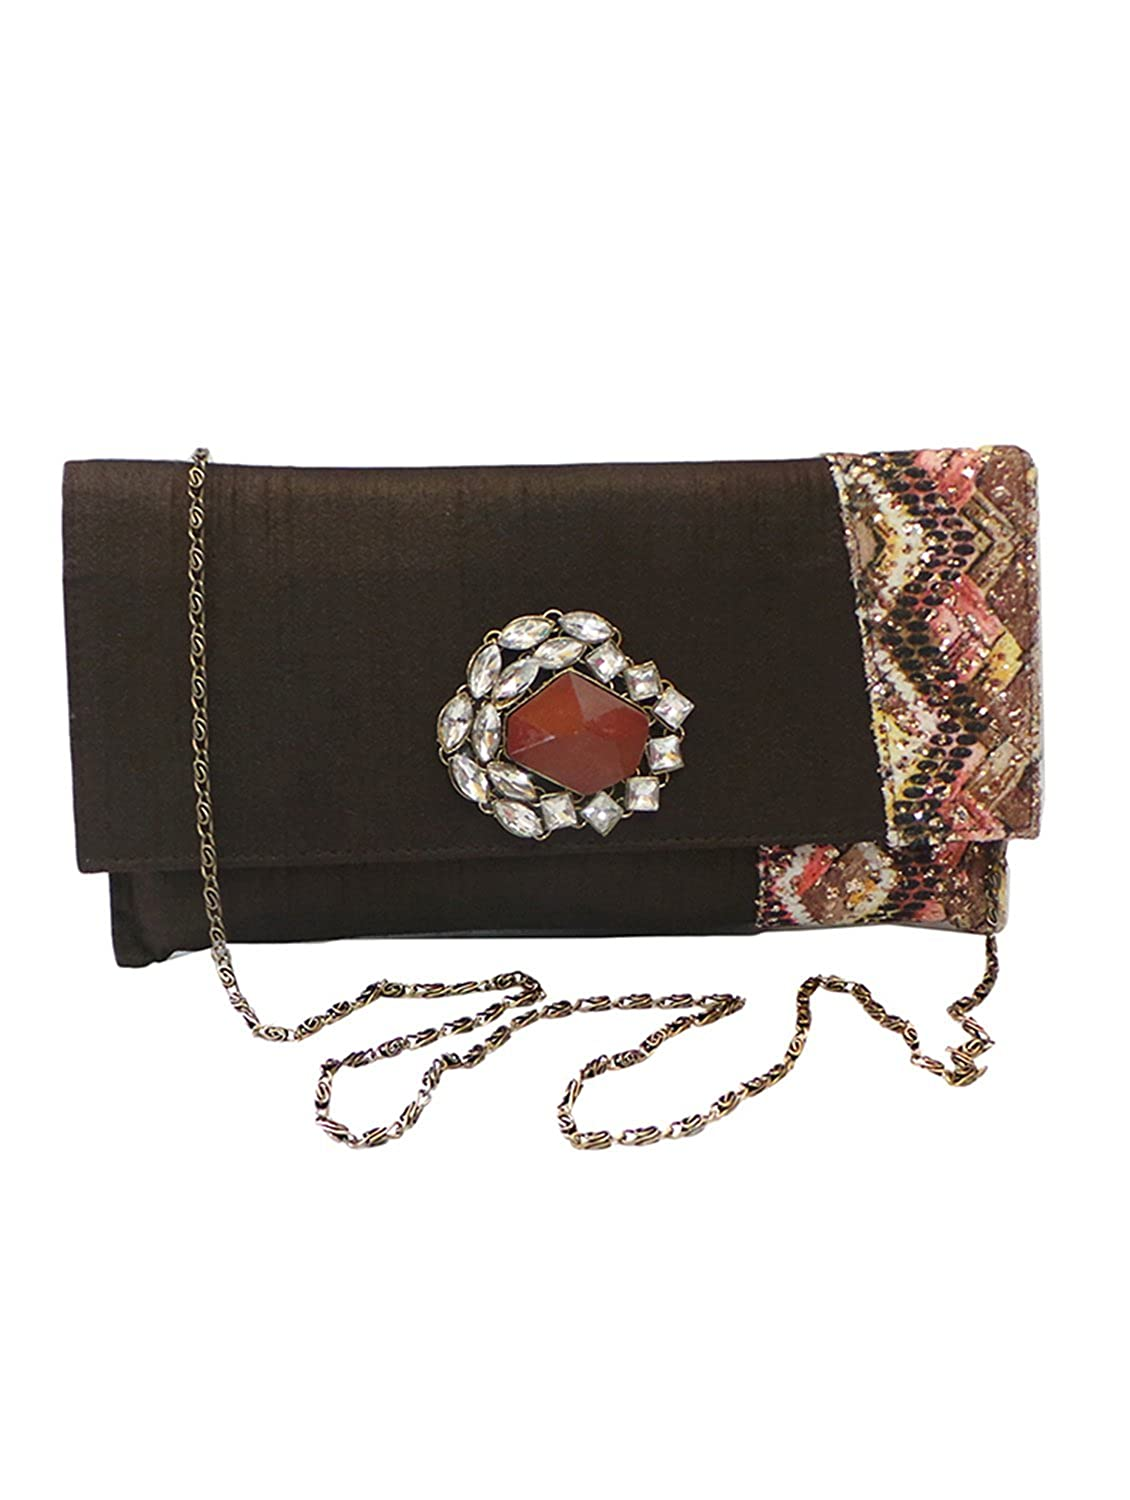 Bhamini Brown Electrifying Eclectic Clutch